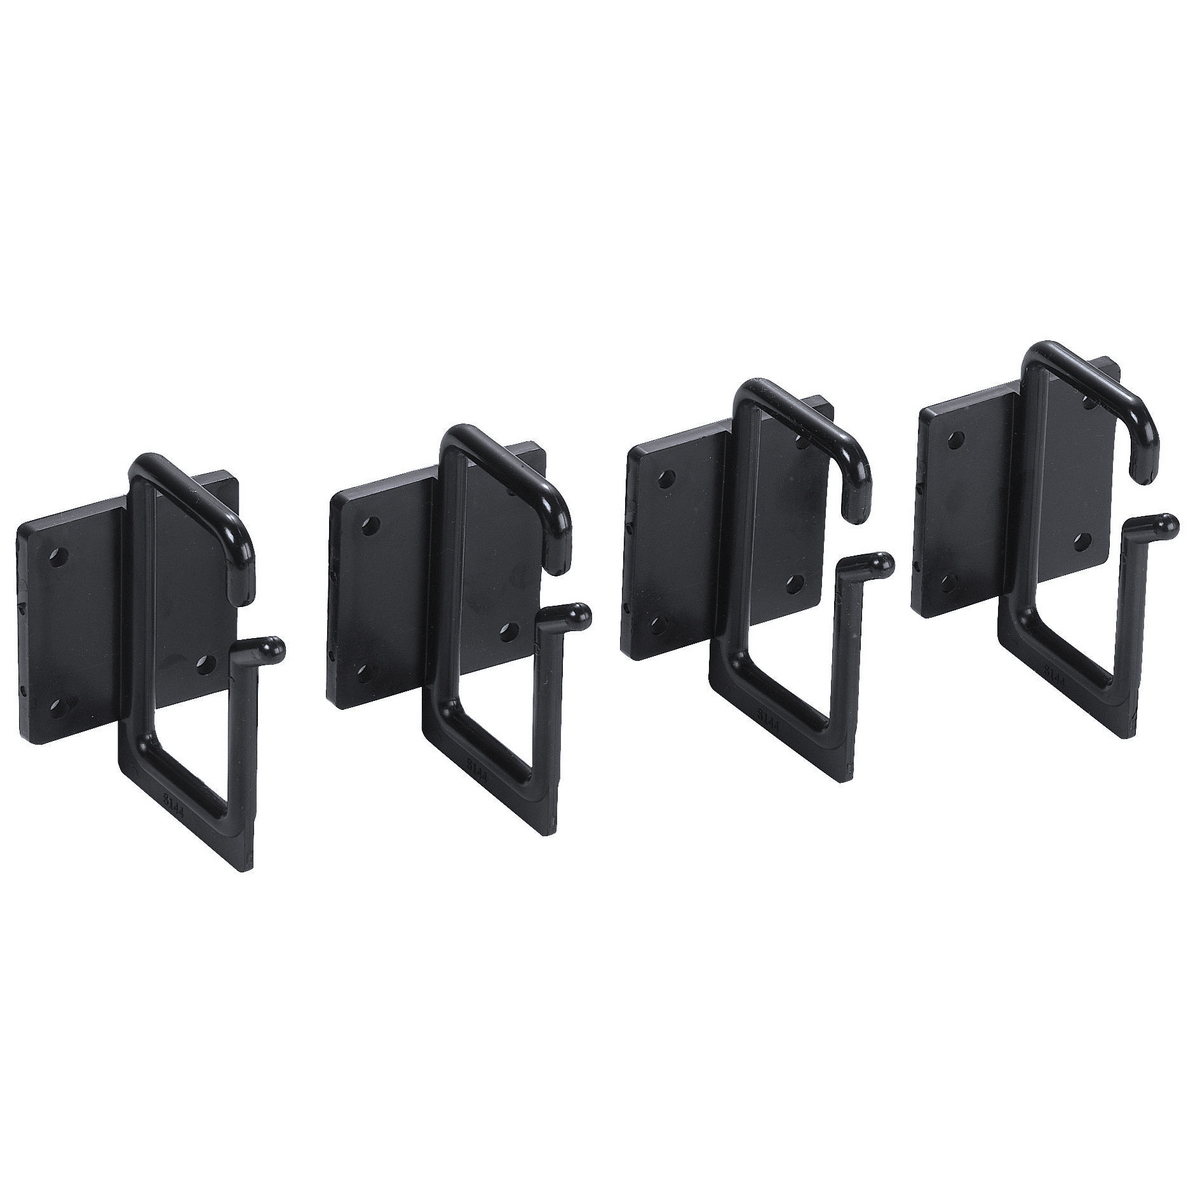 Hubbell Plastic Cable Management Rings (Package of 4)